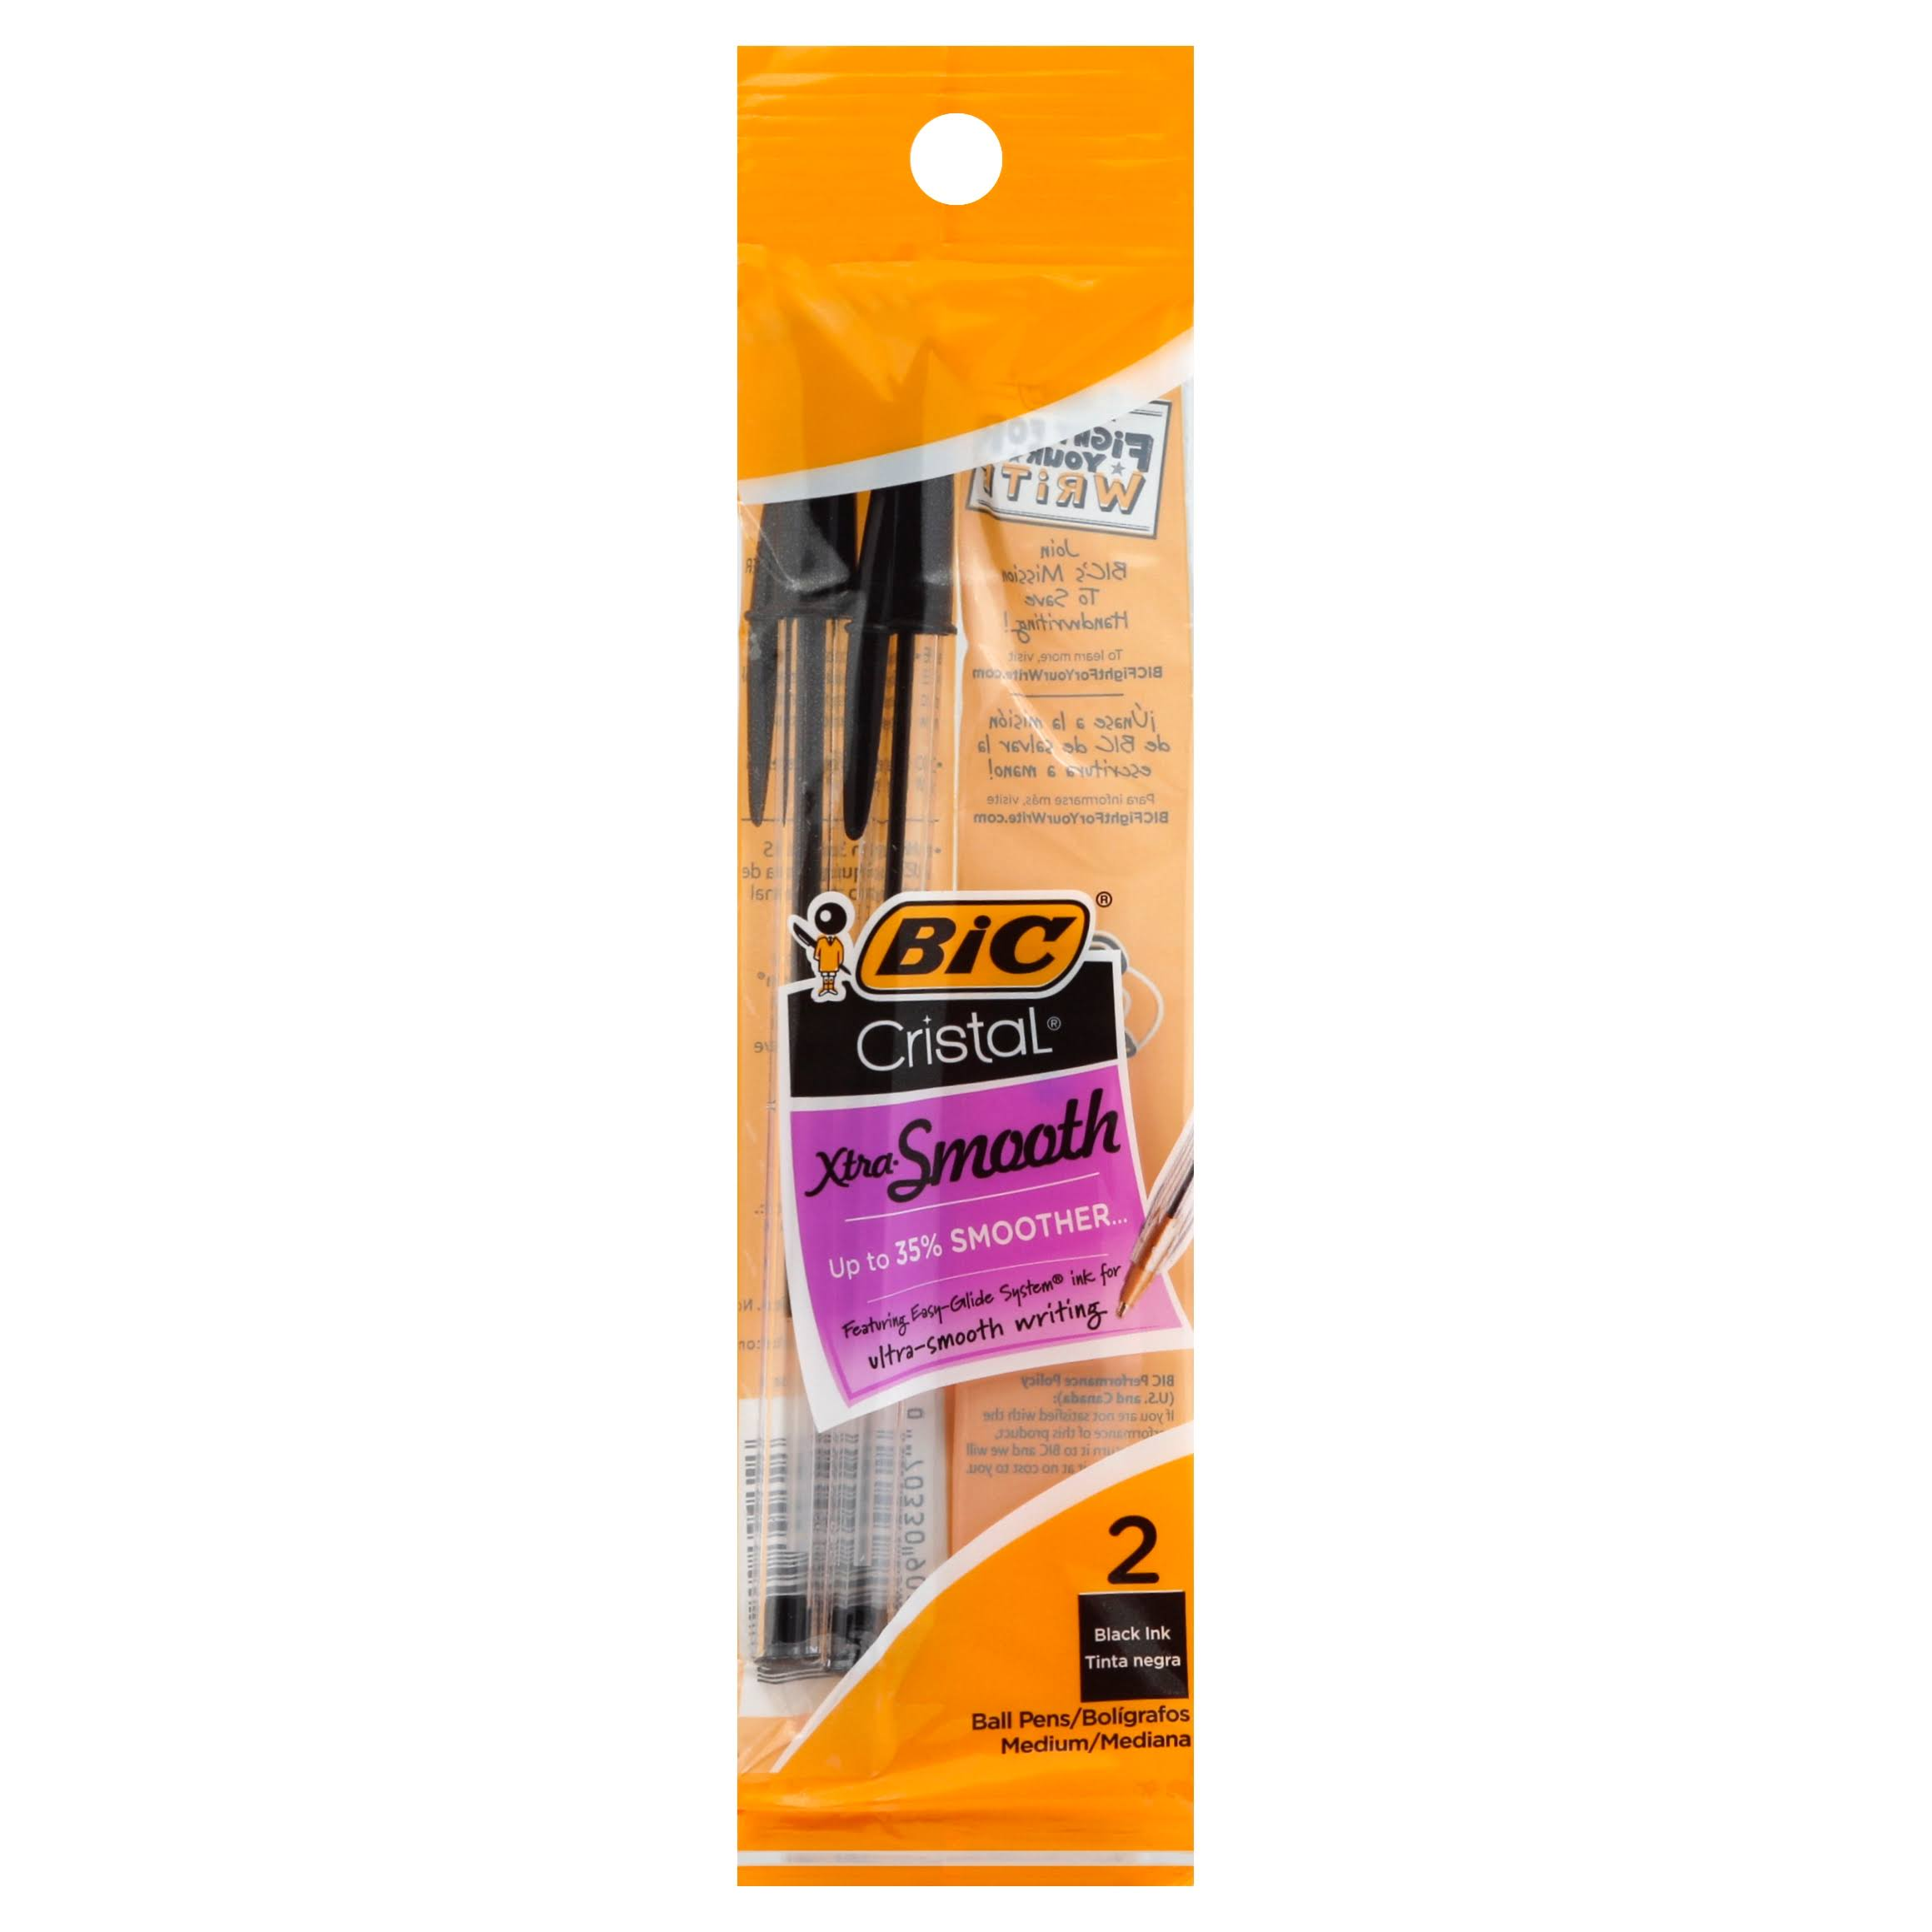 Bic Cristal Stic Ball Pens - Medium Point, 2 Pack